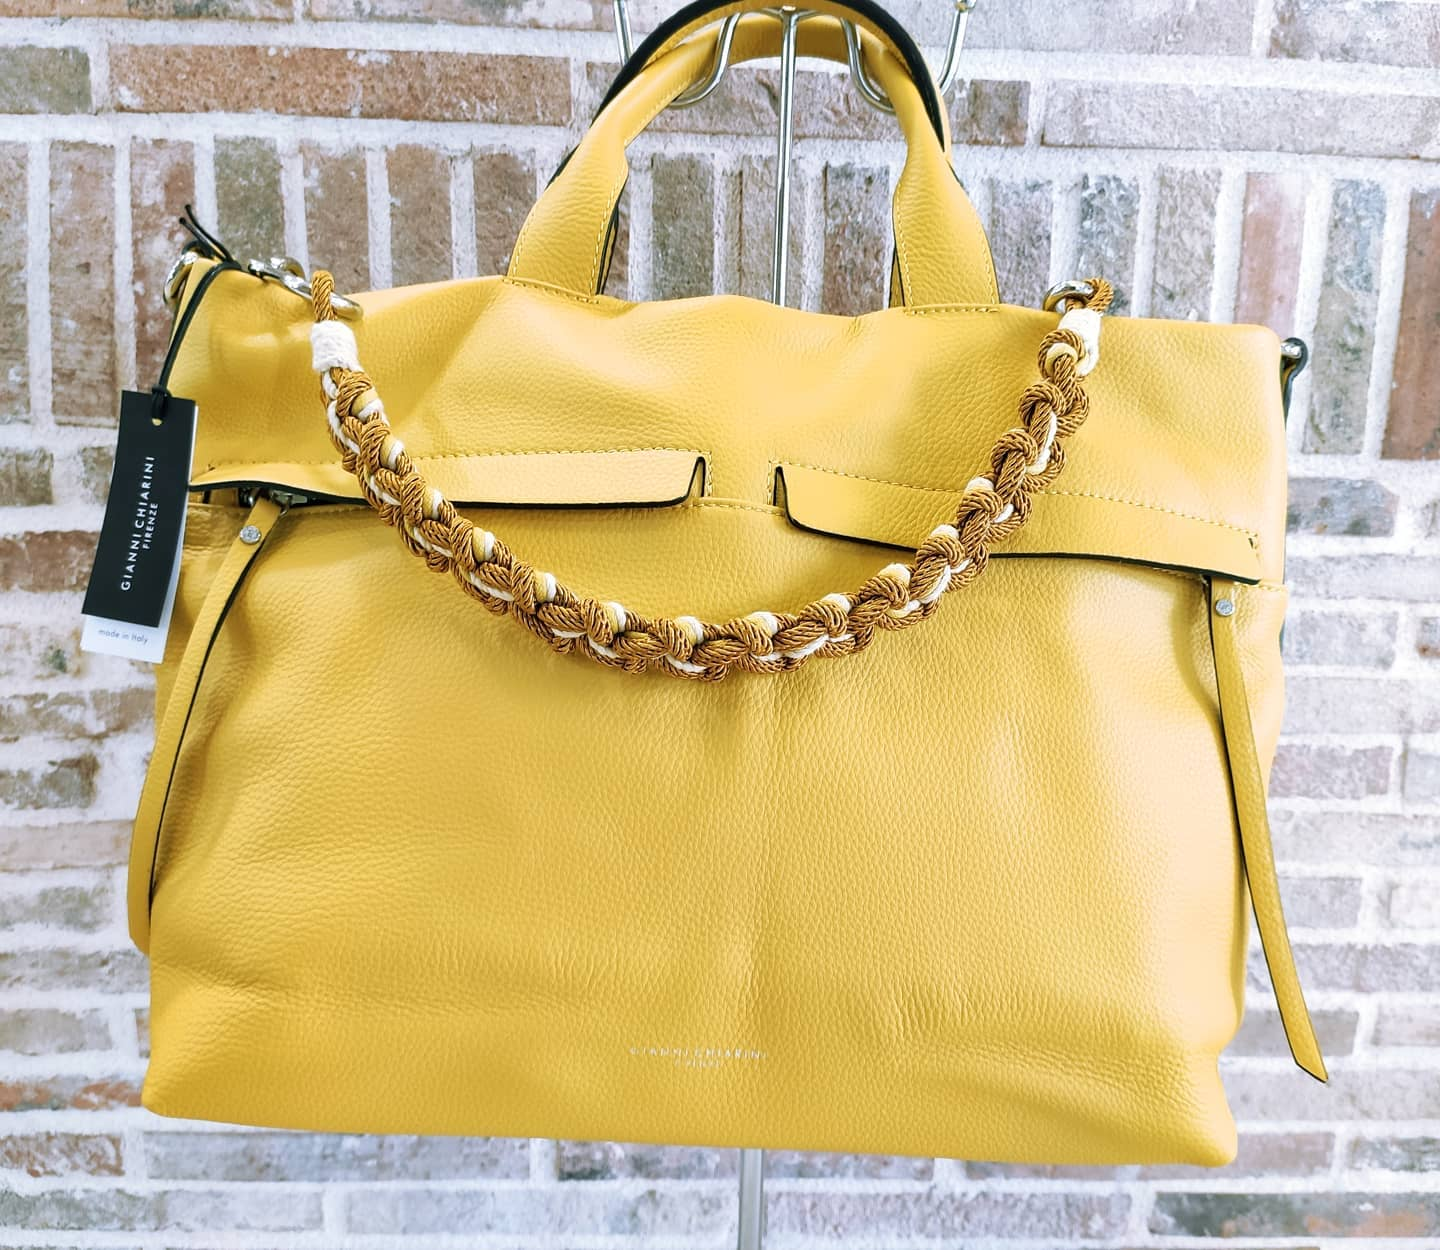 Borsa in pelle MADE IN ITALY By Gianni Chiarini